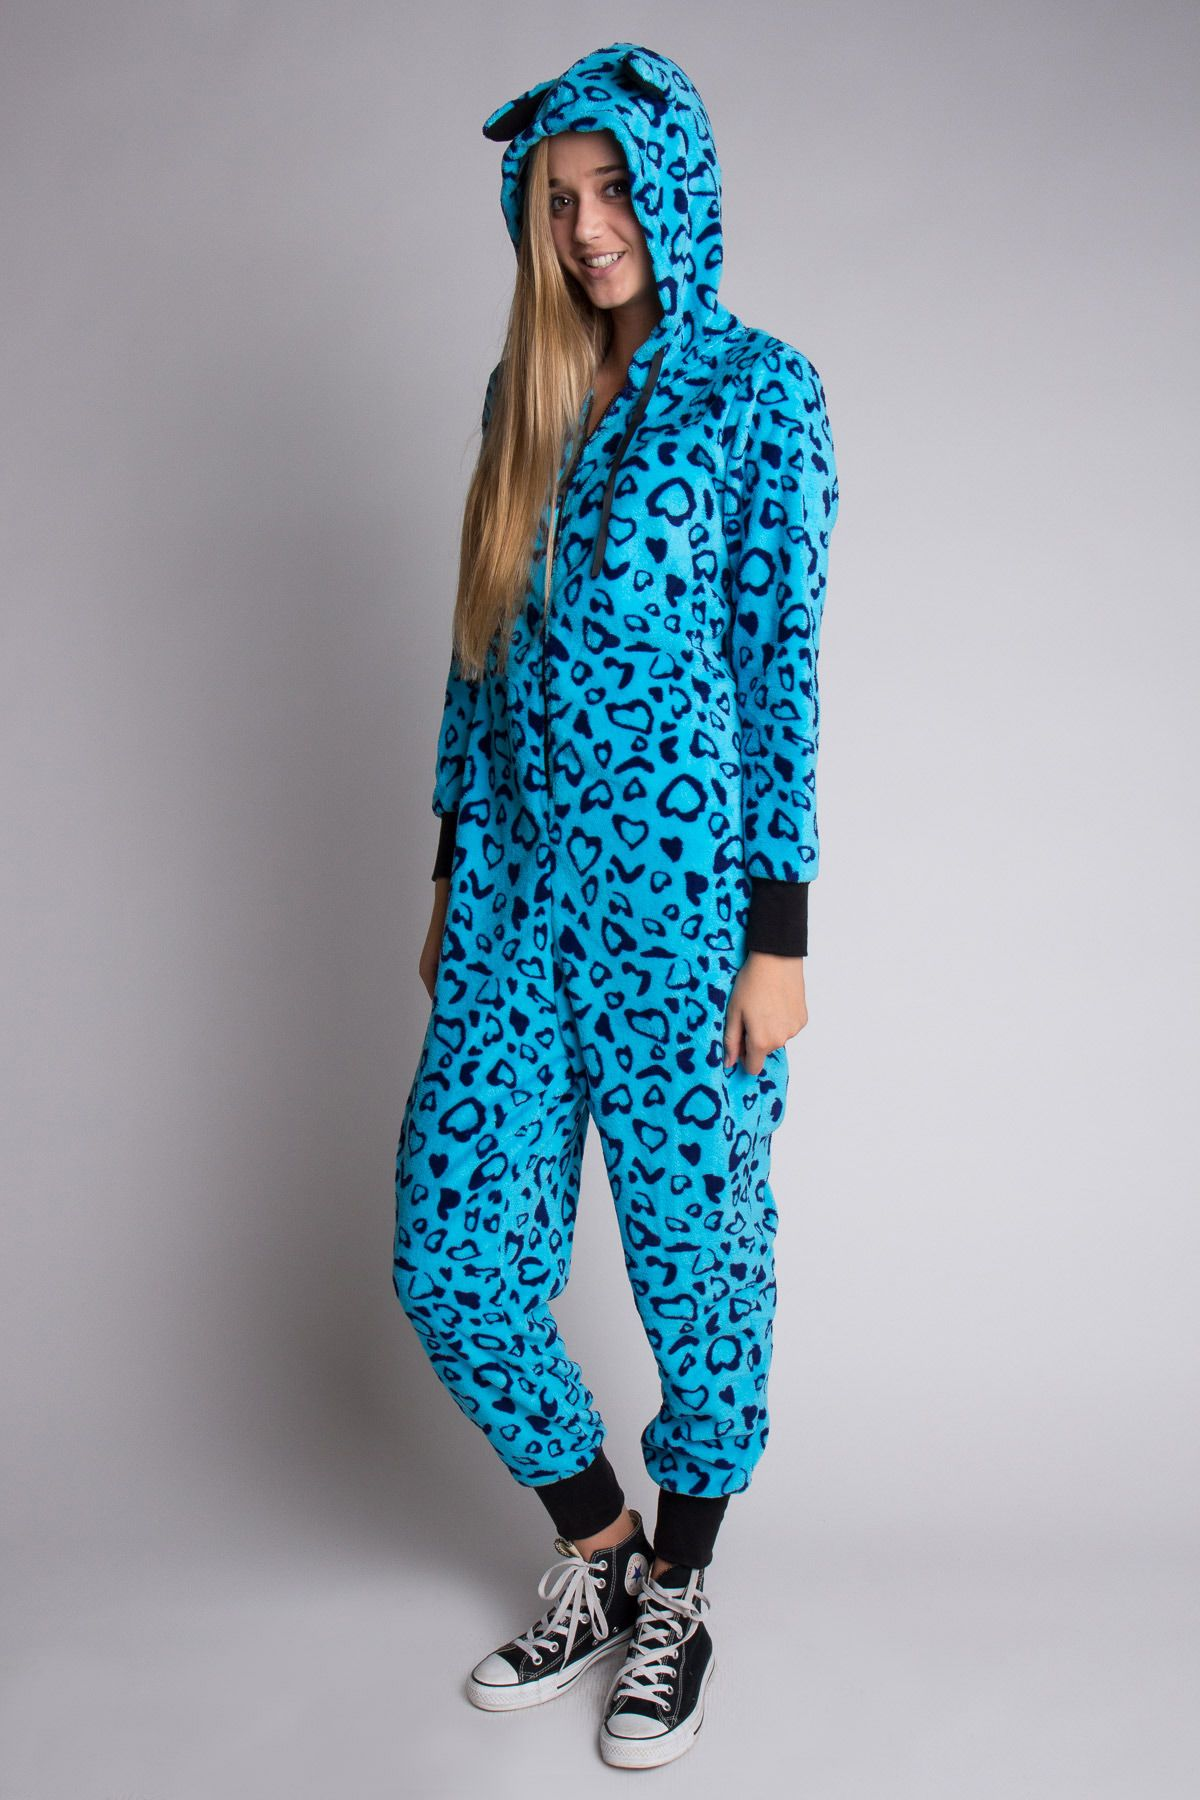 Blue Cheetah Onesie Pajamas! And I m pretty sure those spots are heart  shaped! a29ad264b